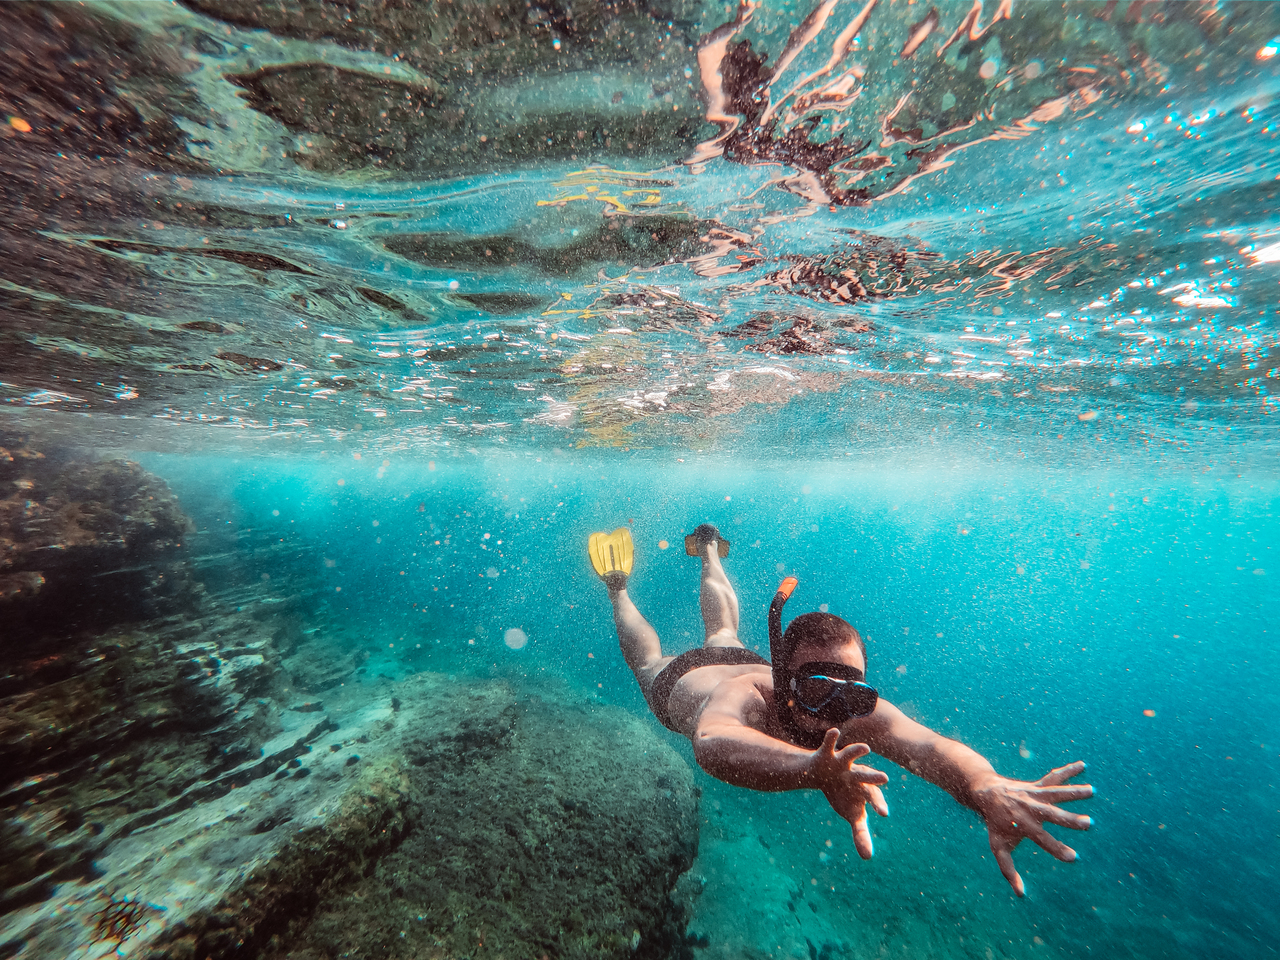 An underwater picture of a man snorkeling in a beach